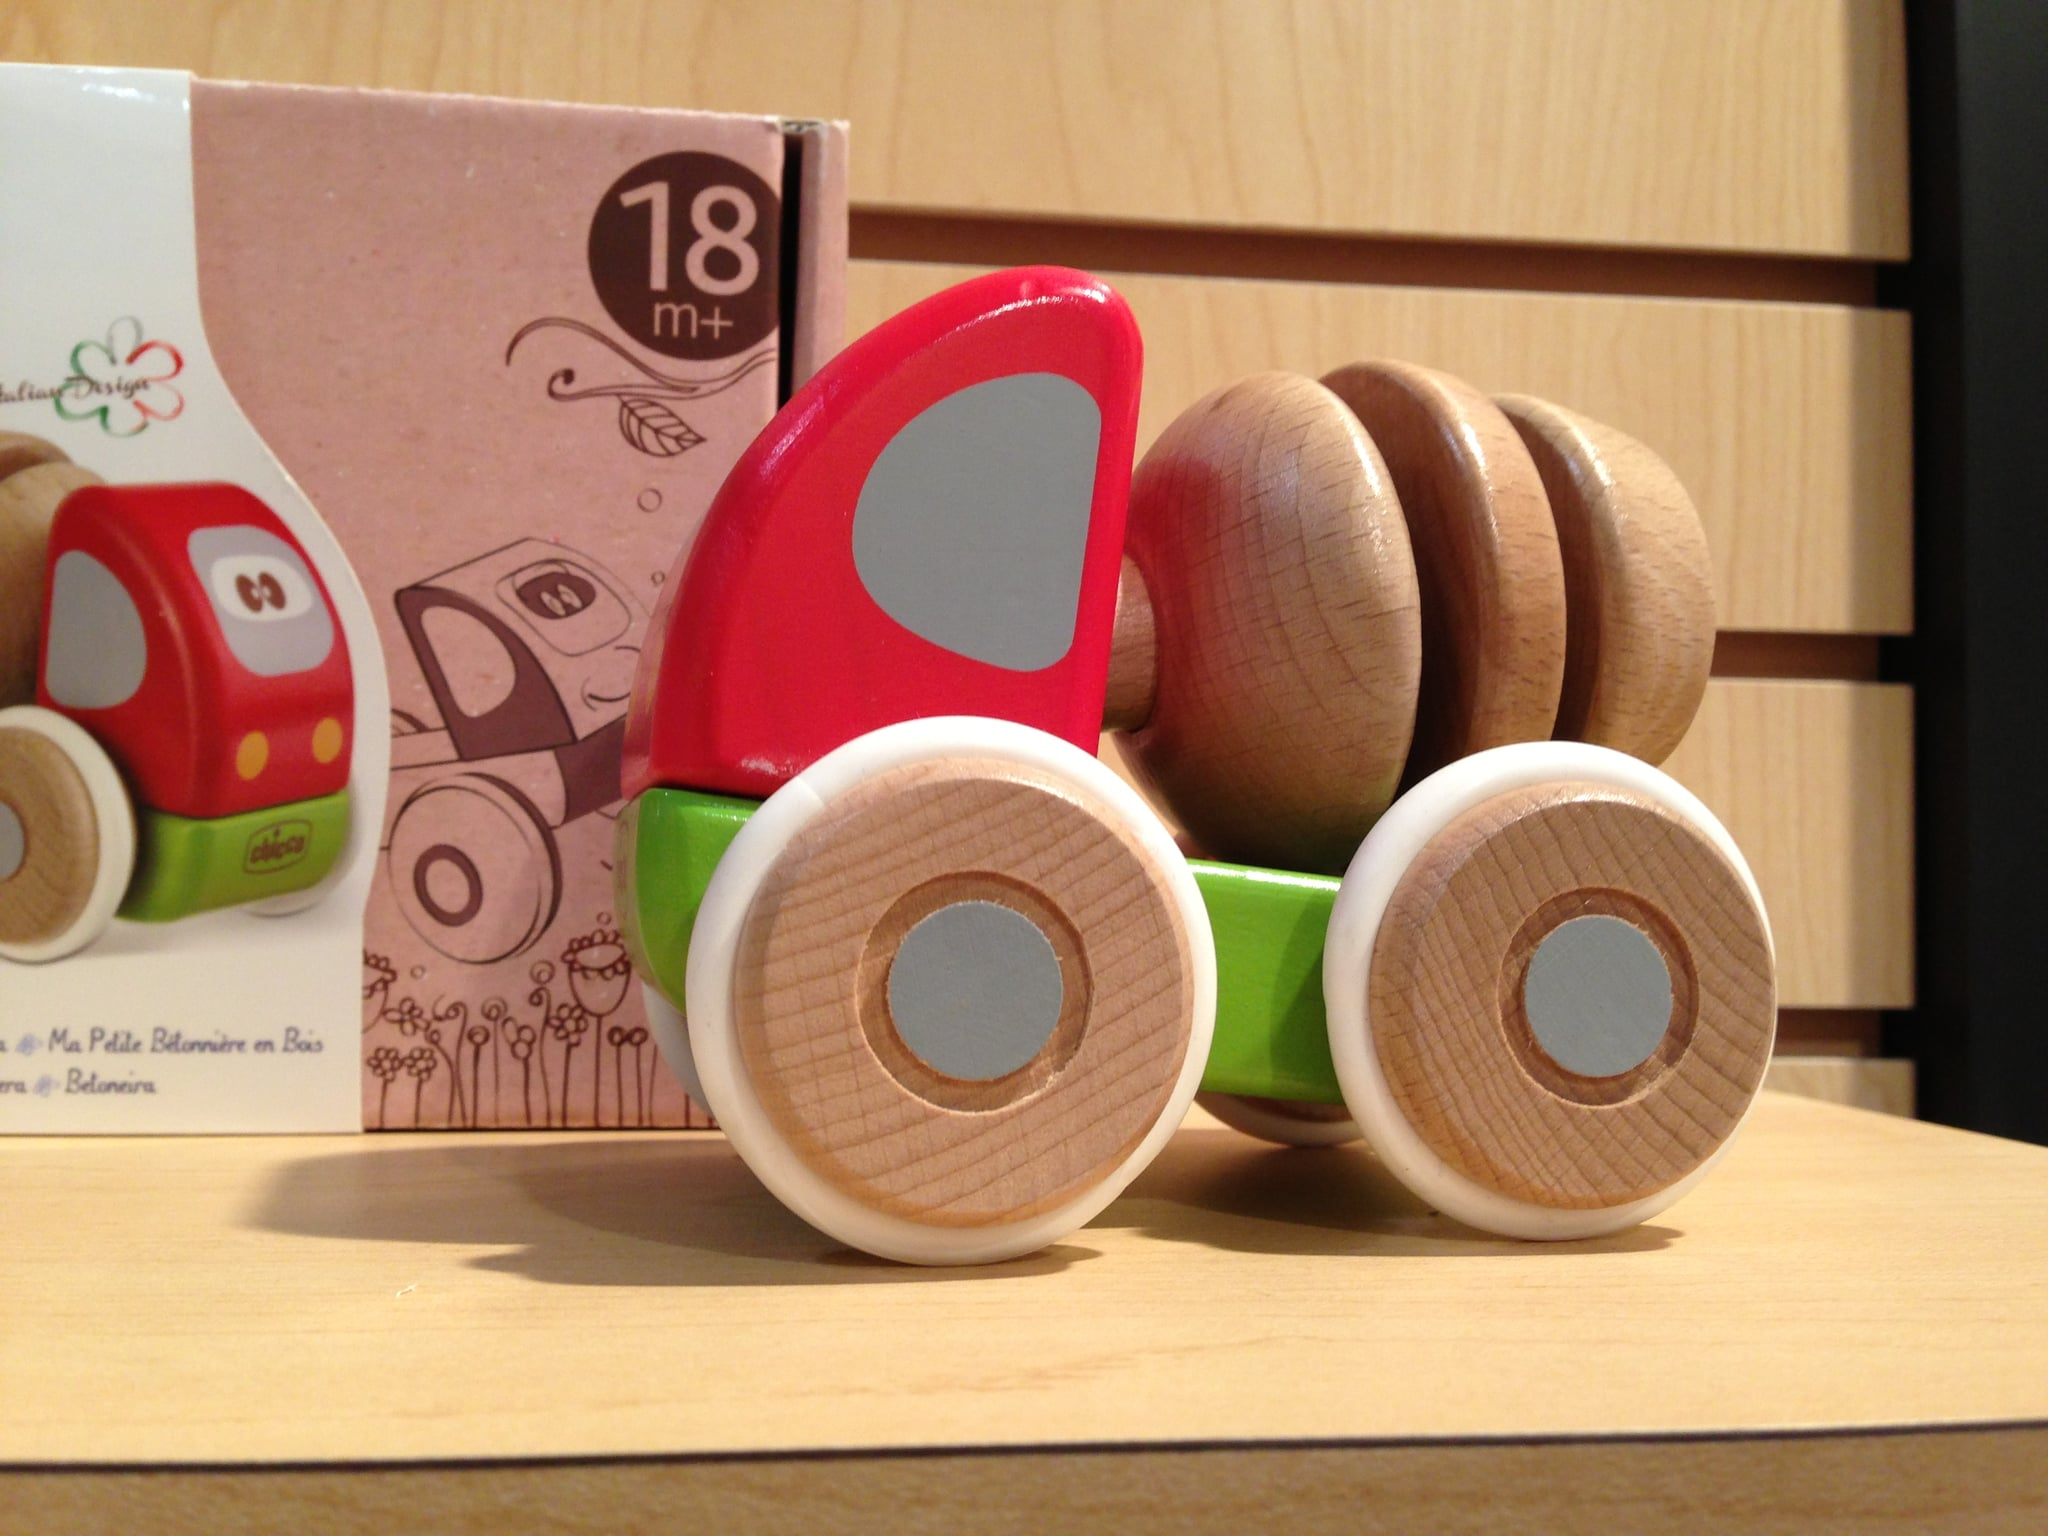 A rolling cement mixer for little hands from Chicco's new wooden toy line.